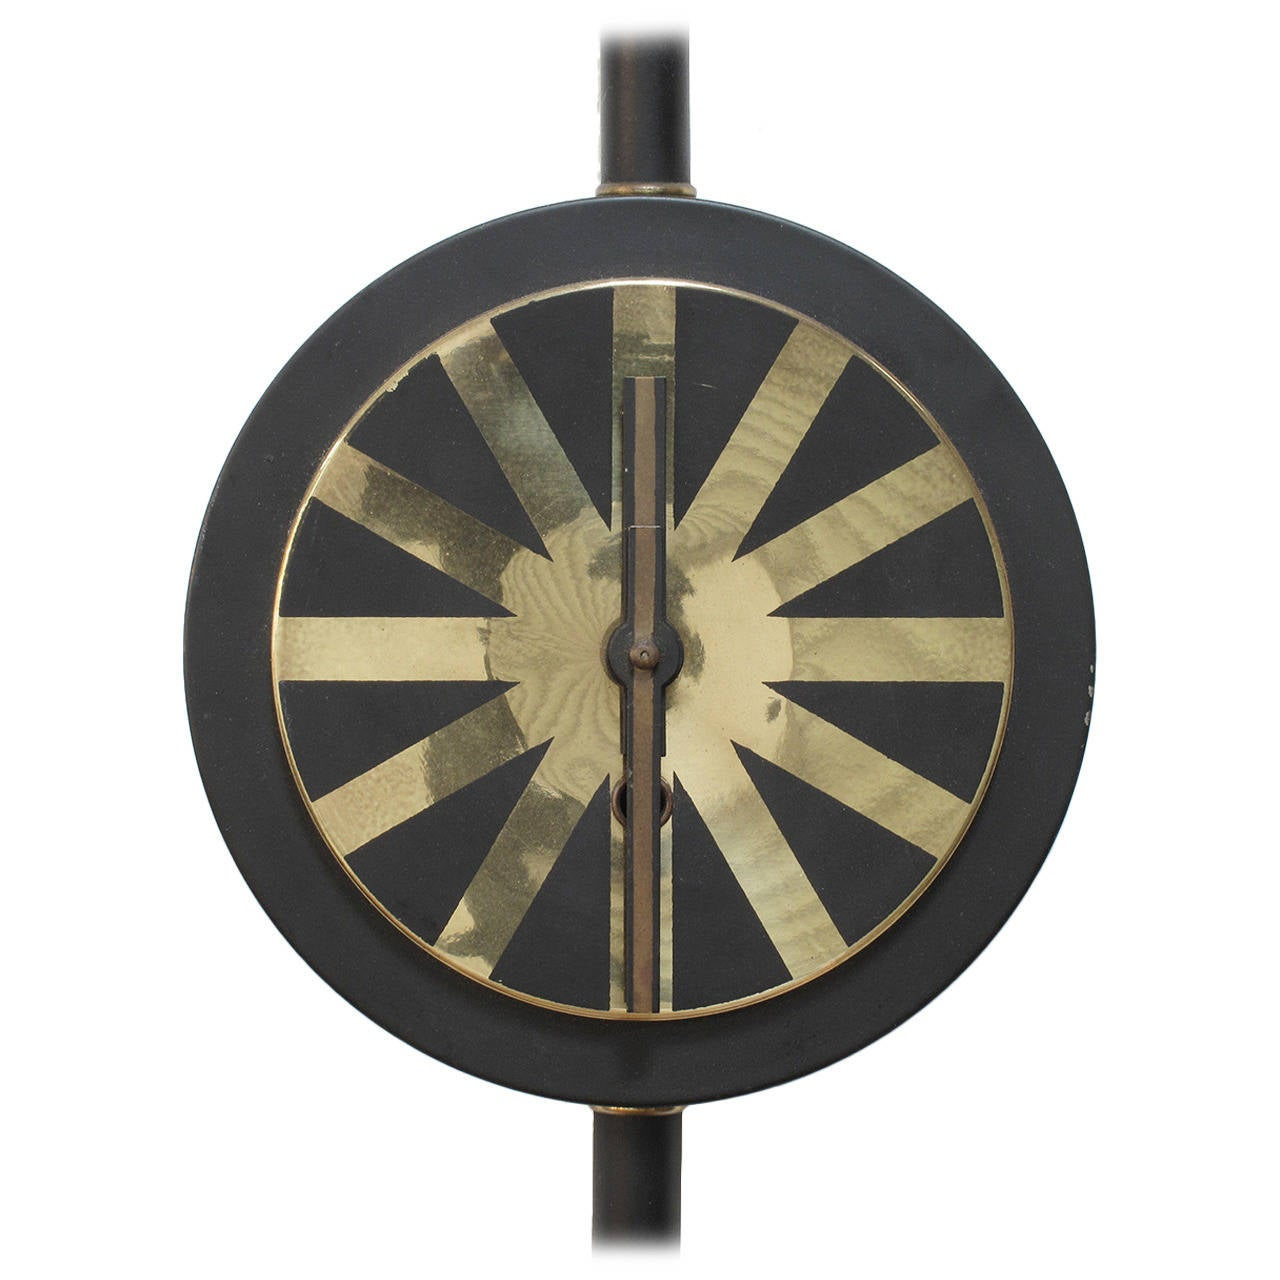 Modernist Wall Clock Made In Germany 1957 At 1stdibs